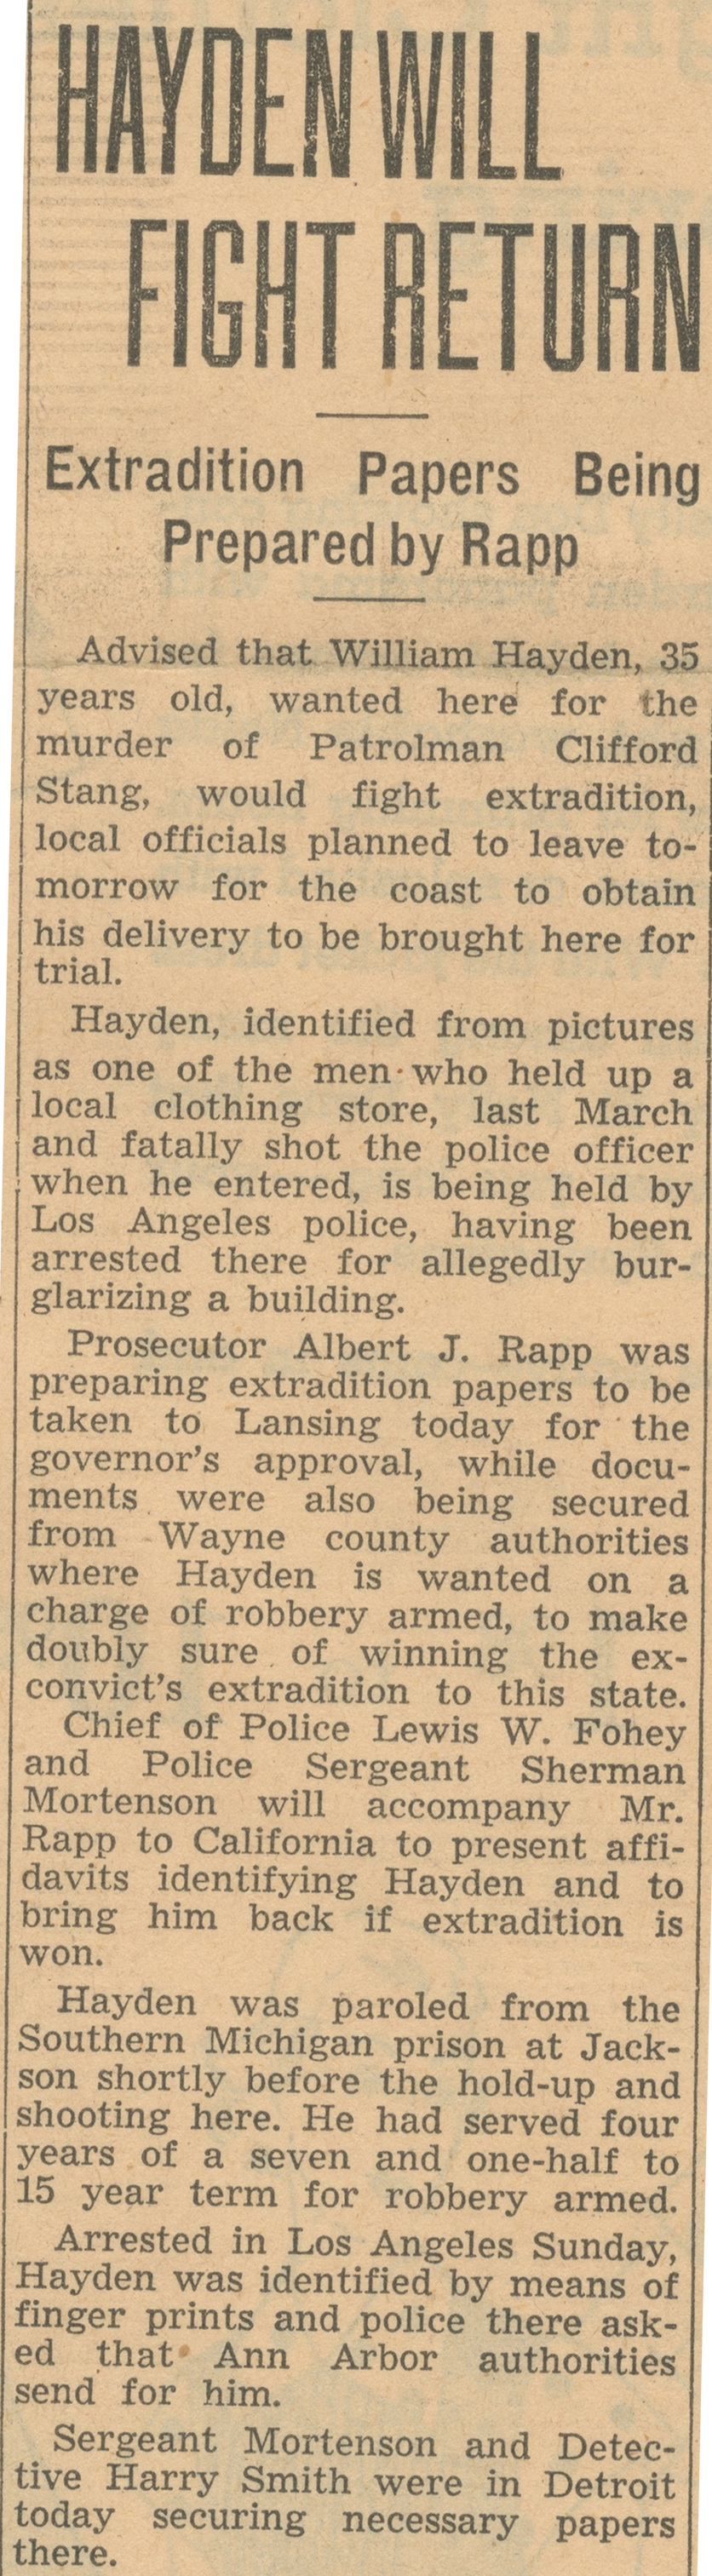 Hayden Will Fight Return - Extradition Papers Being Prepared By Rapp image